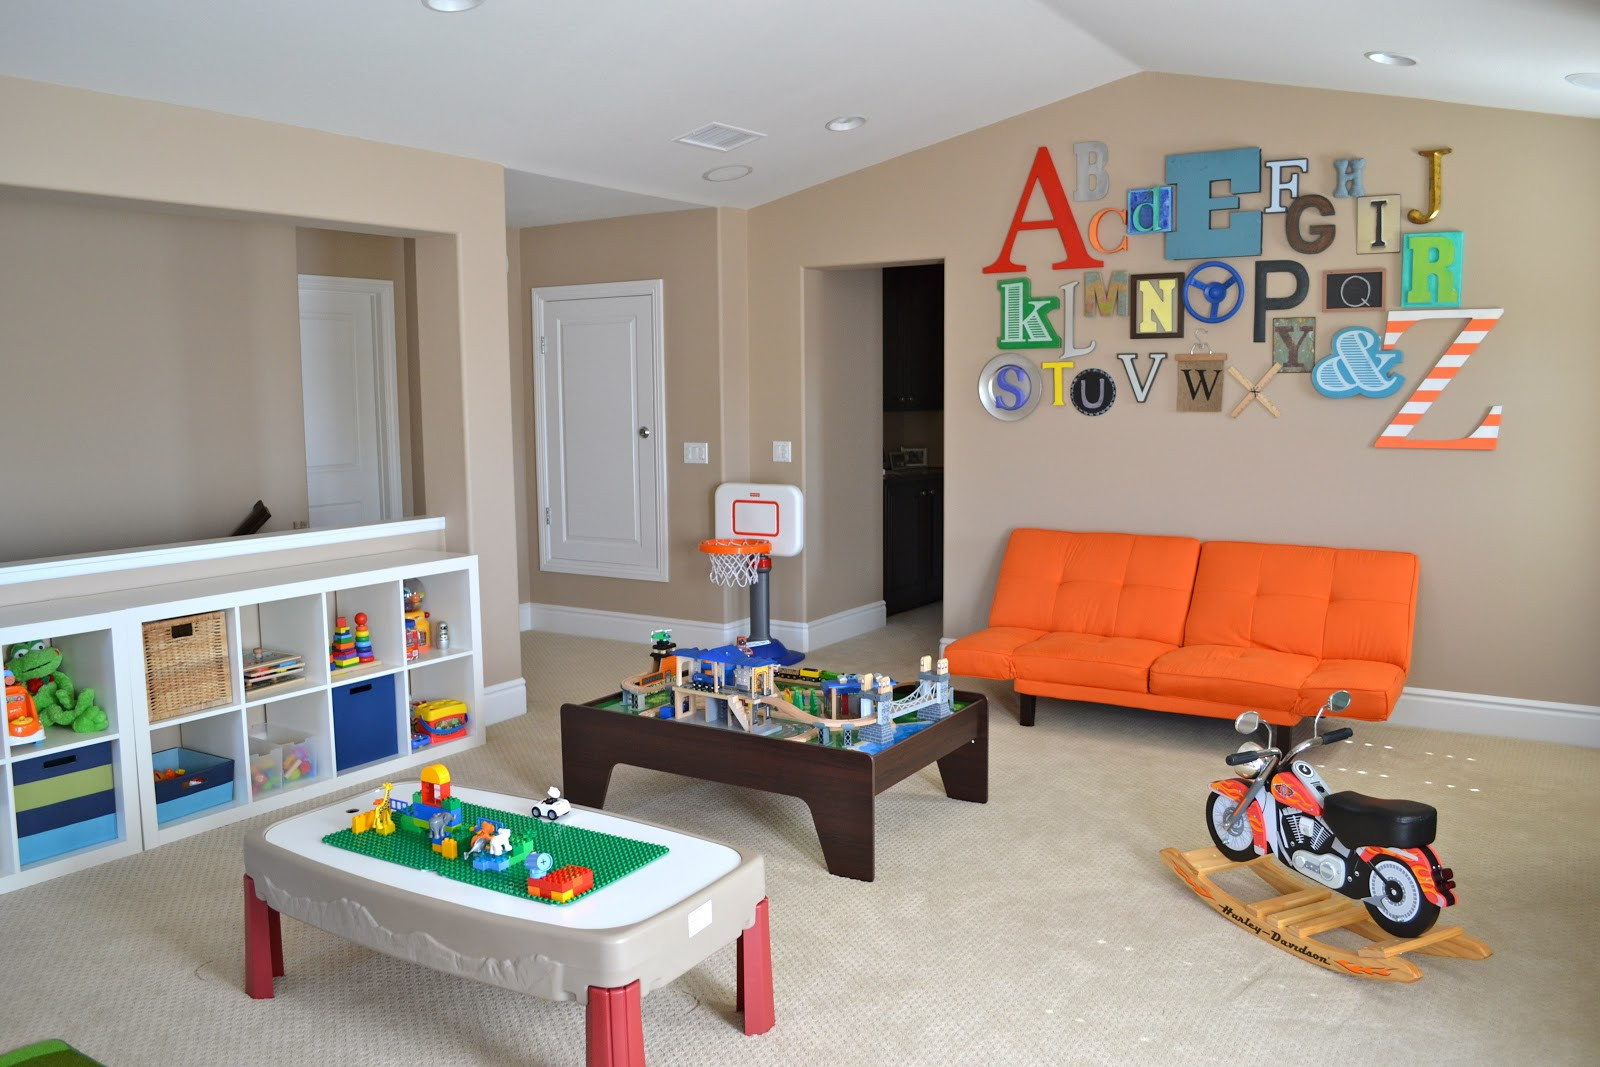 Best ideas about DIY Kids Playroom . Save or Pin Playroom Tour With Lots of DIY Ideas • Color Made Happy Now.